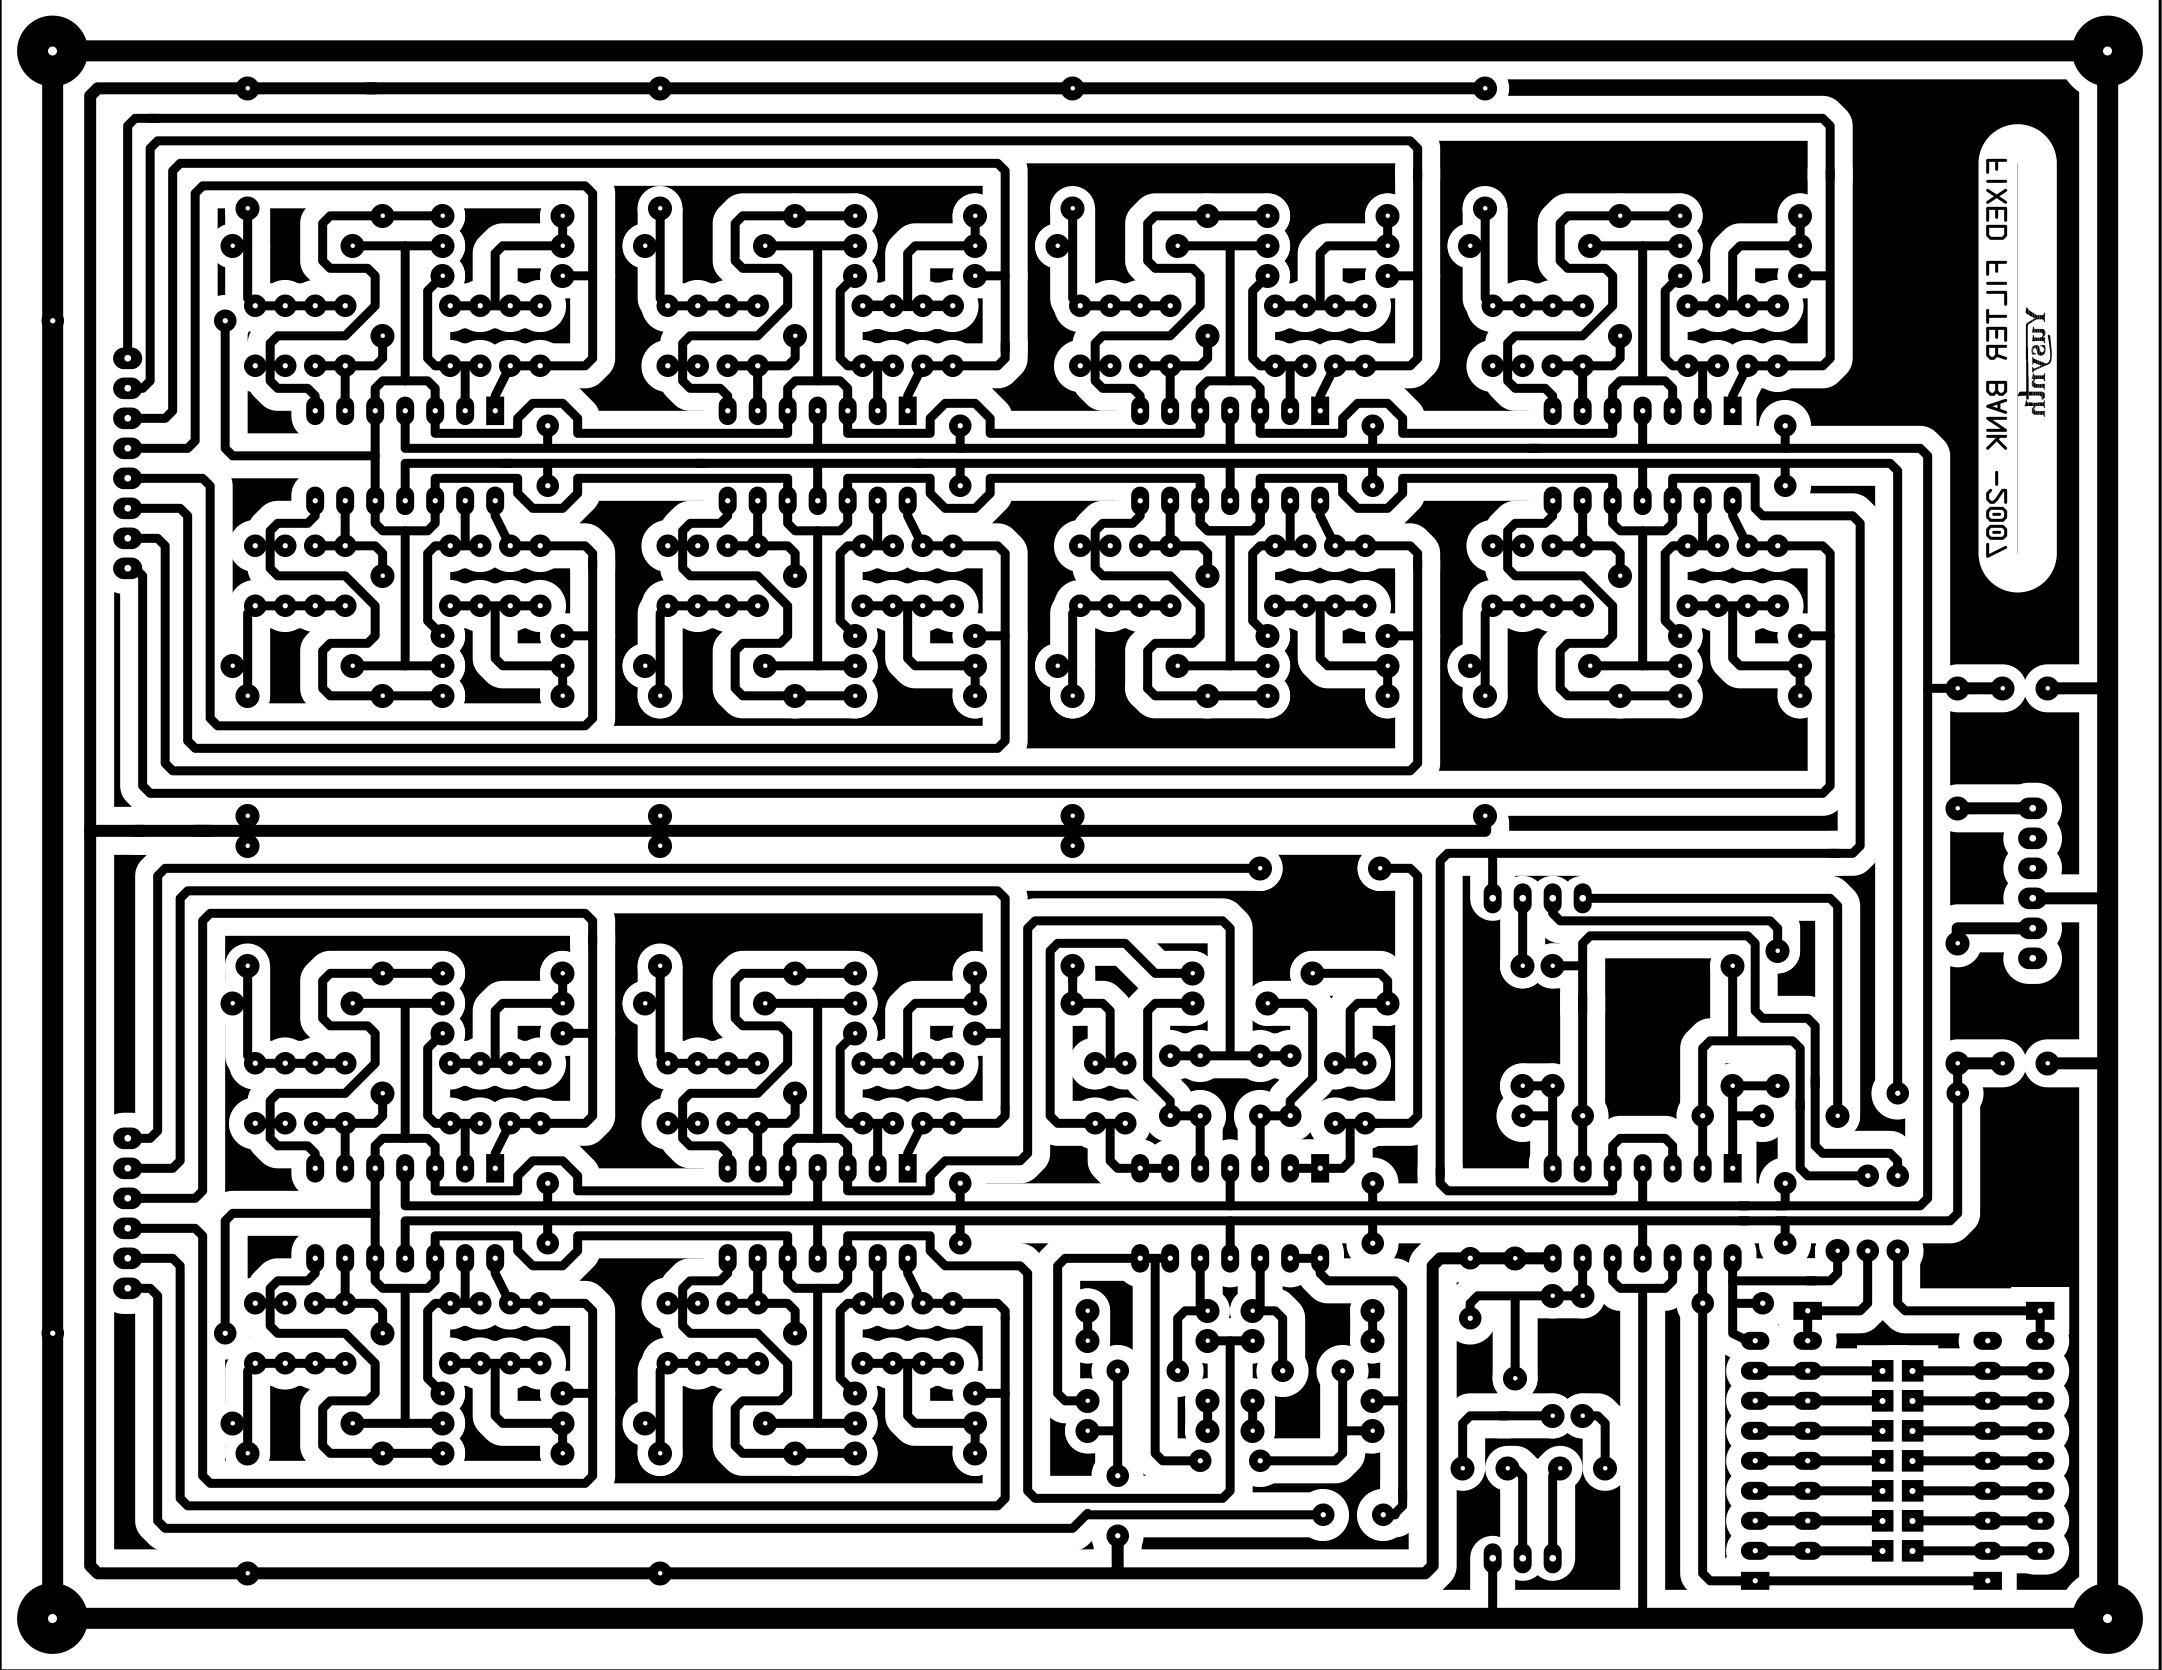 Filter Bank Band Equalizer Schematic Design Pcb